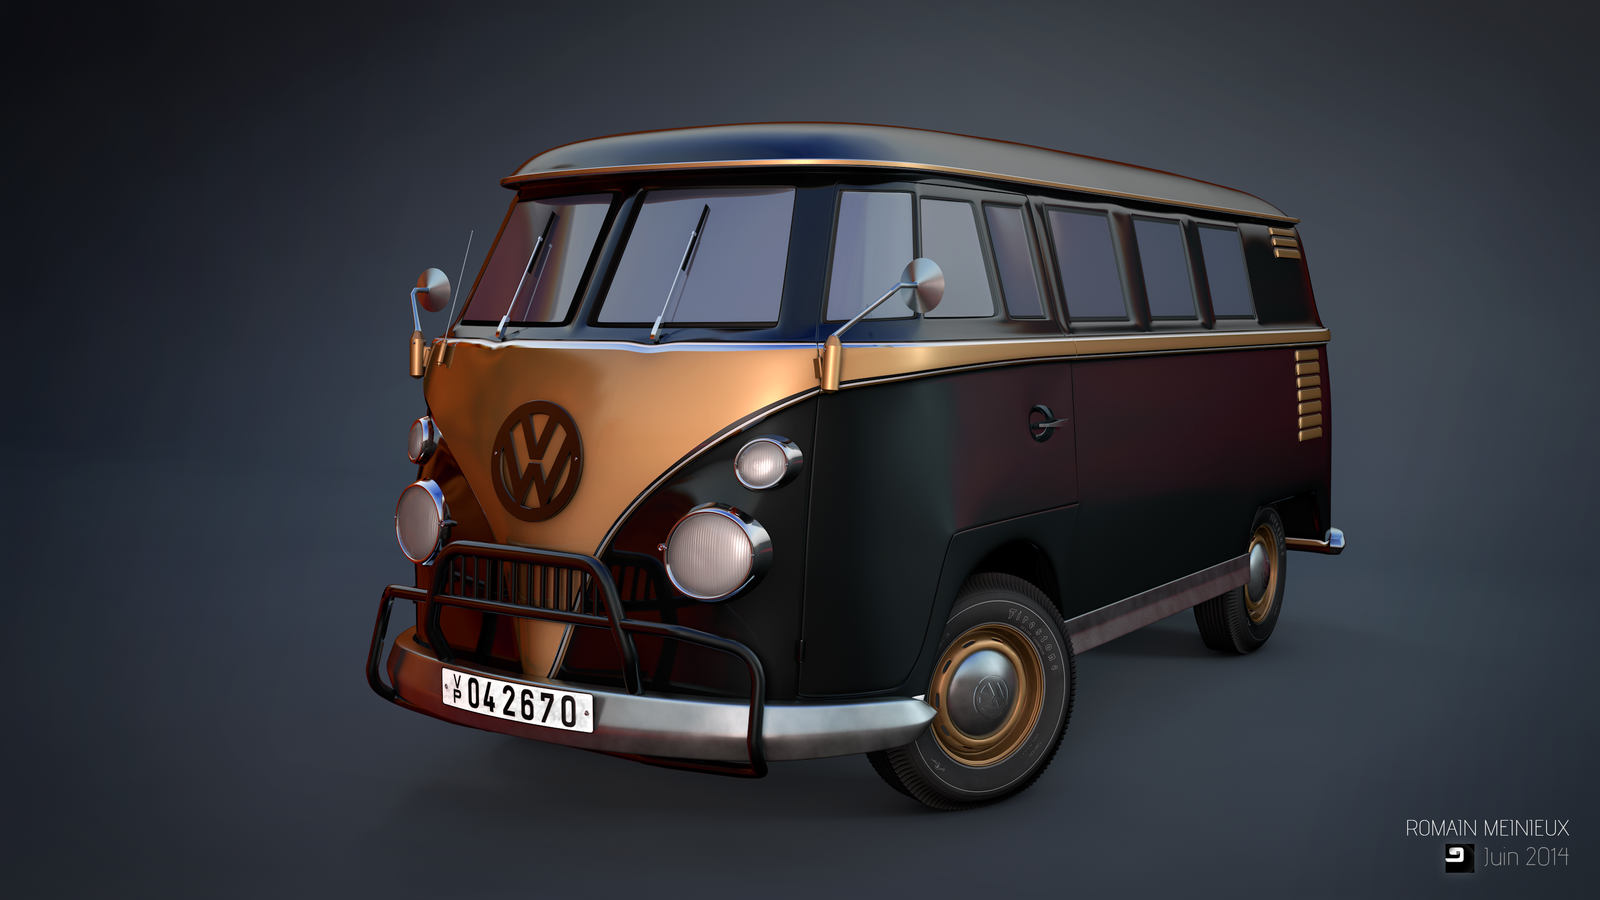 combi volkswagen t2 1962 by pallacium on deviantart. Black Bedroom Furniture Sets. Home Design Ideas